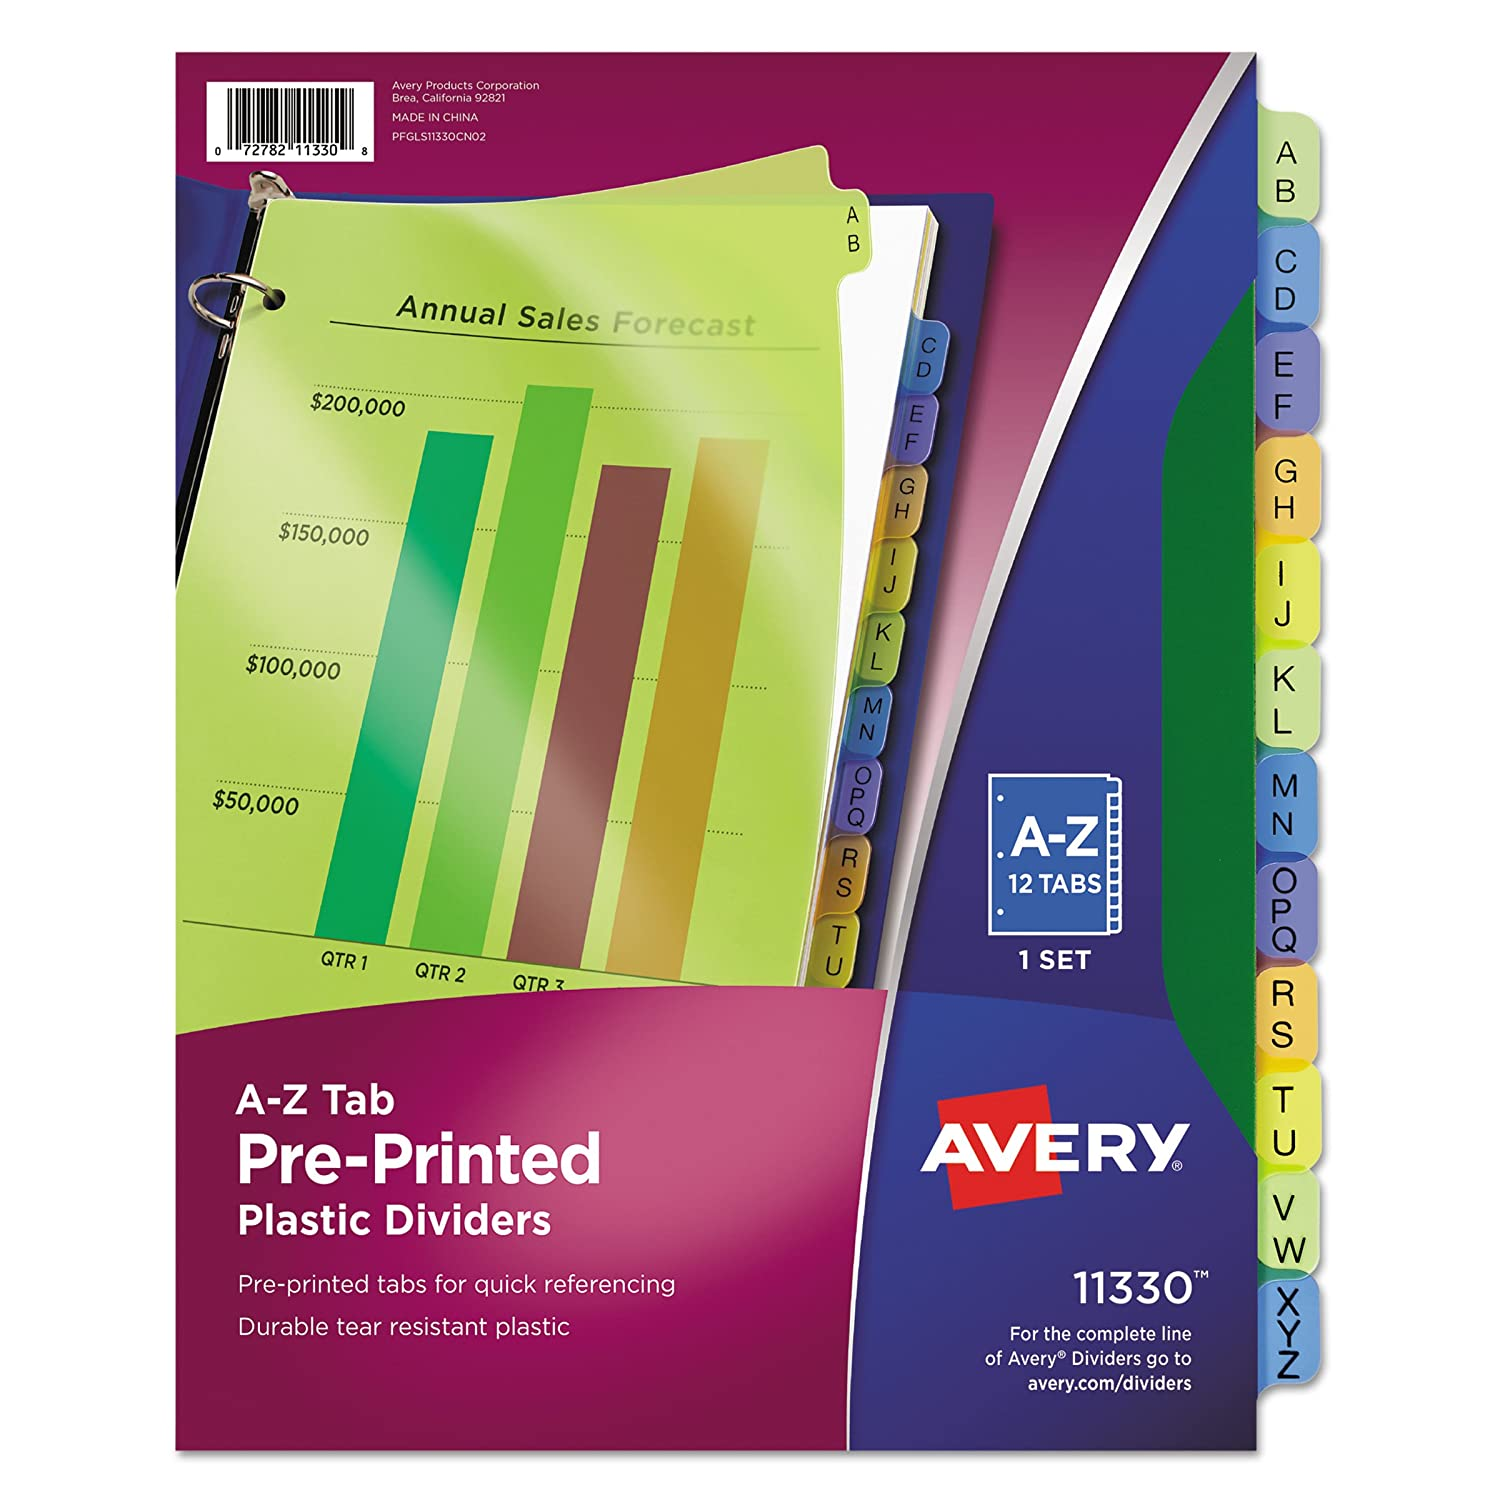 Avery Plastic Preprinted Tab Dividers, 8.5 x 11 Inches, A-Z Tab, Multi-Color Tab, 1 Set (11330)